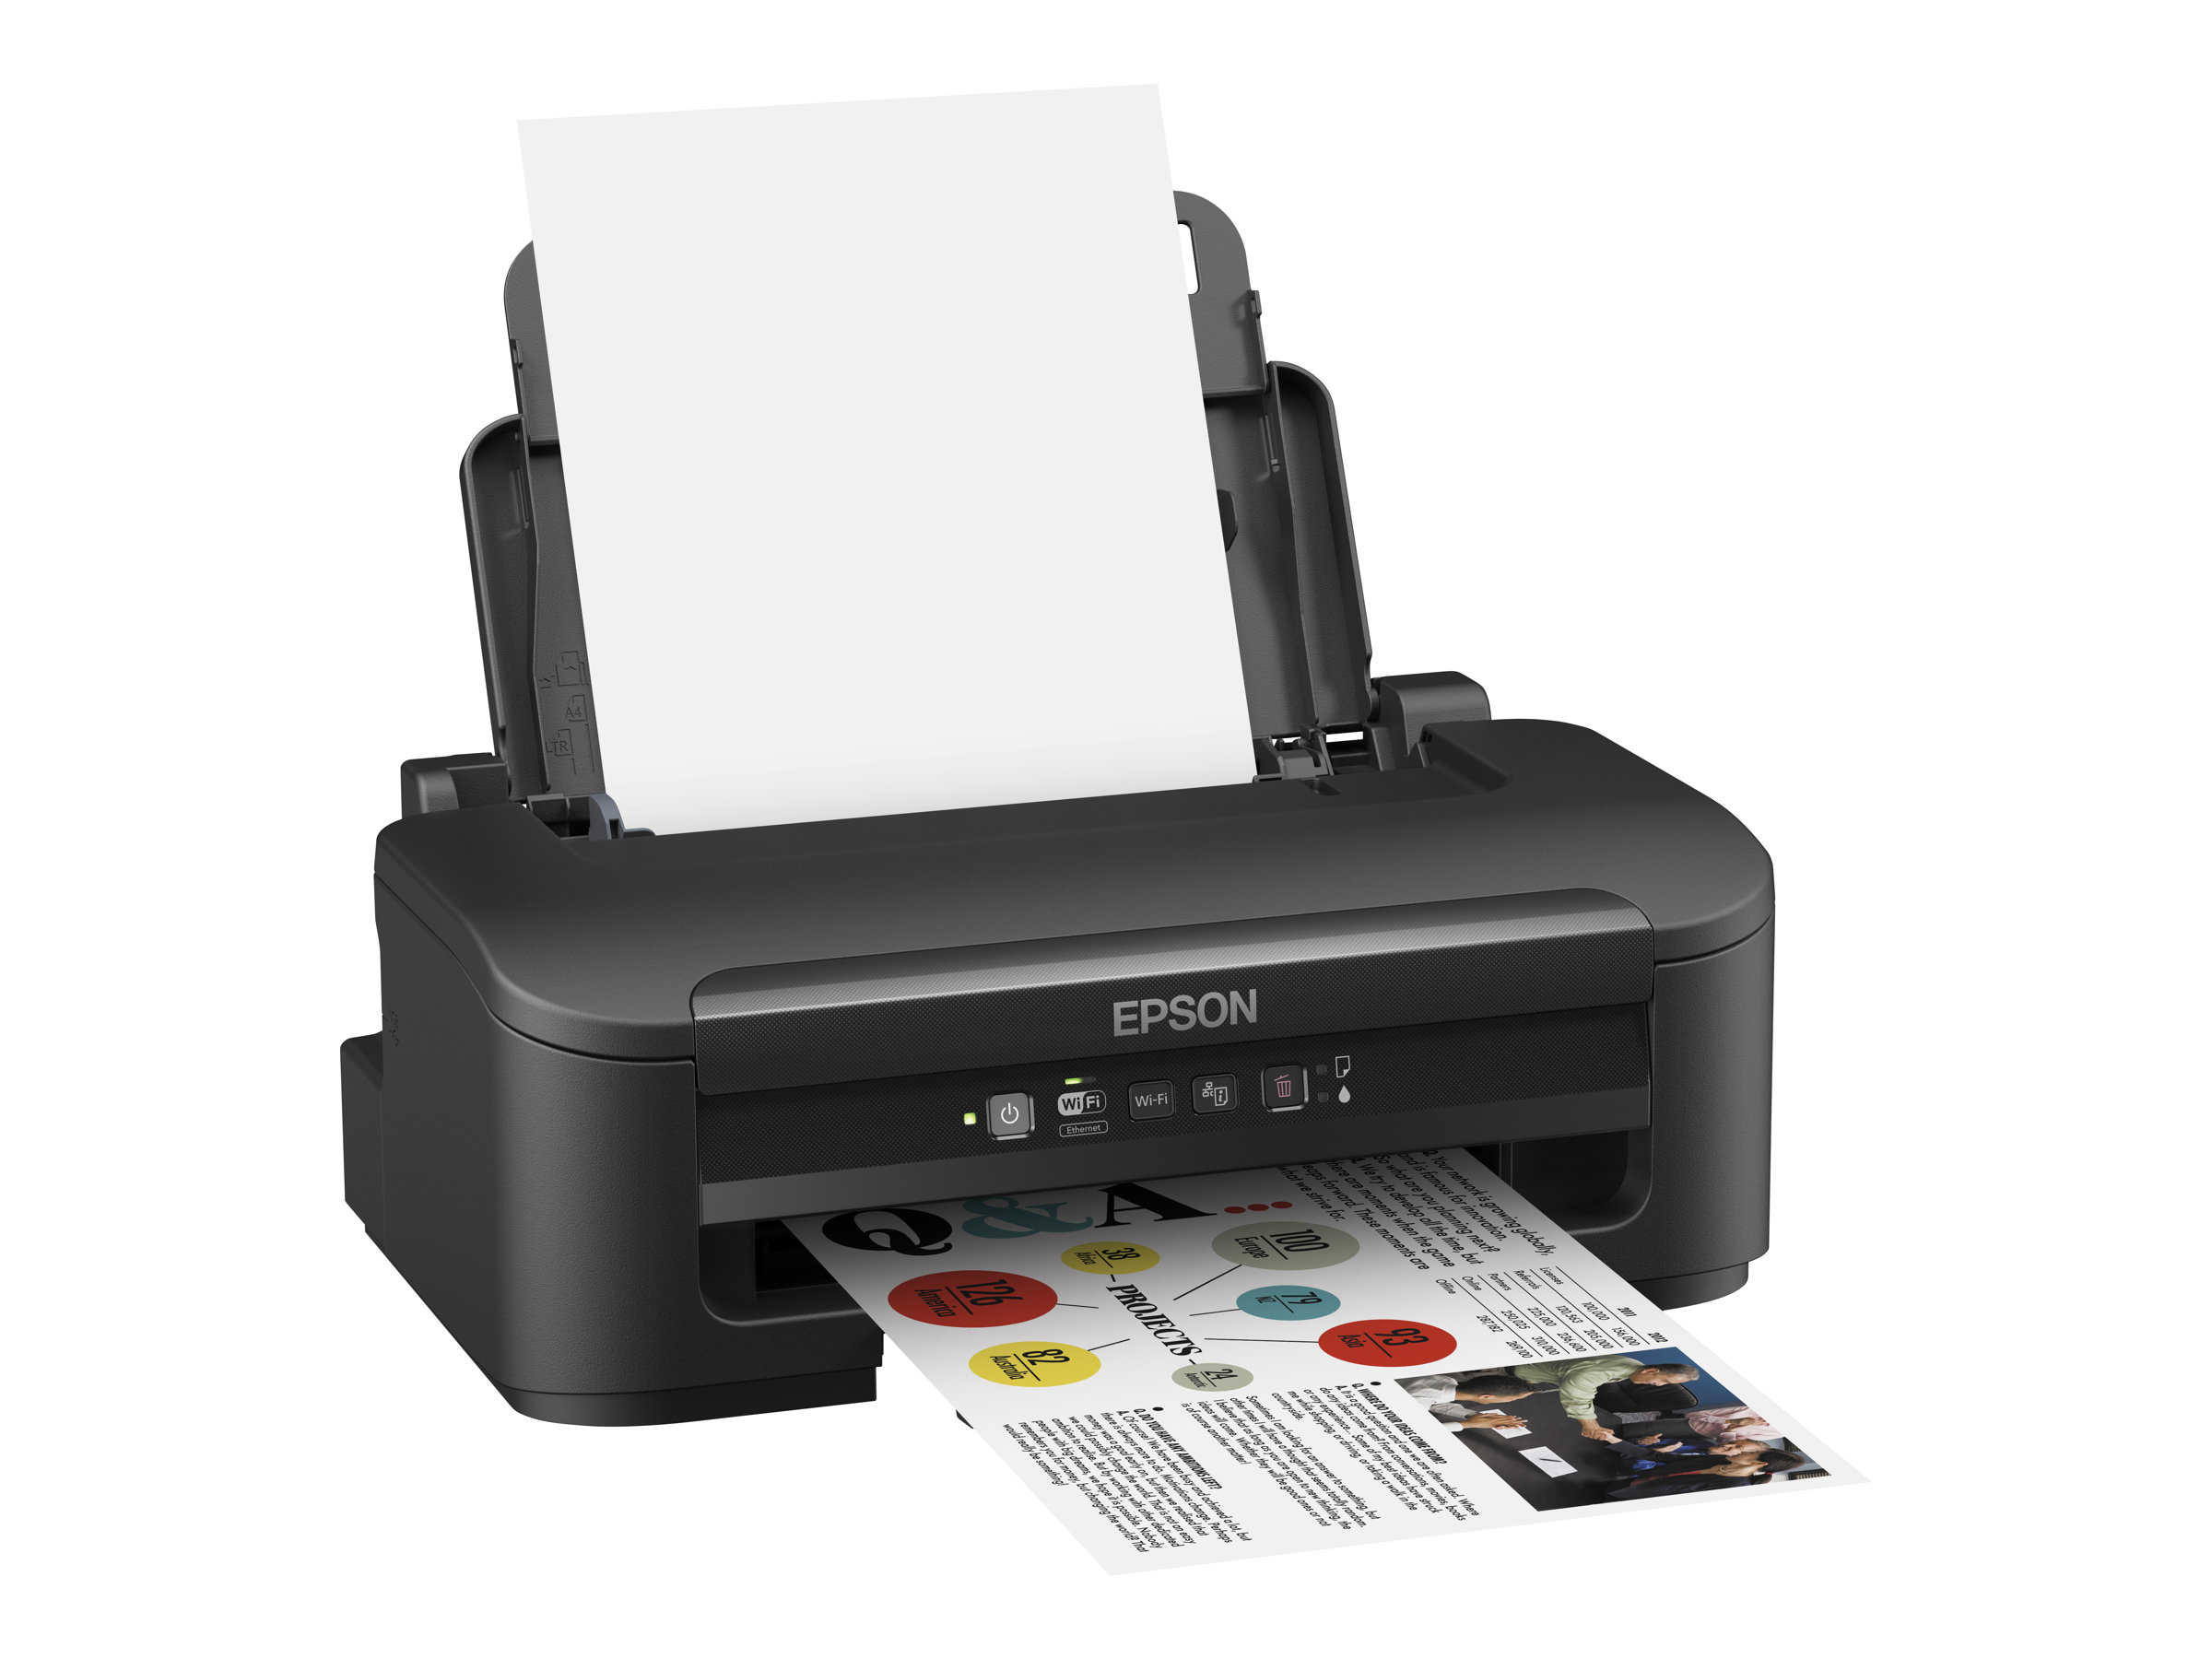 Epson WorkForce WF-2010W - Drucker - Farbe - Tintenstrahl - A4/Legal - 5760 x 1440 dpi